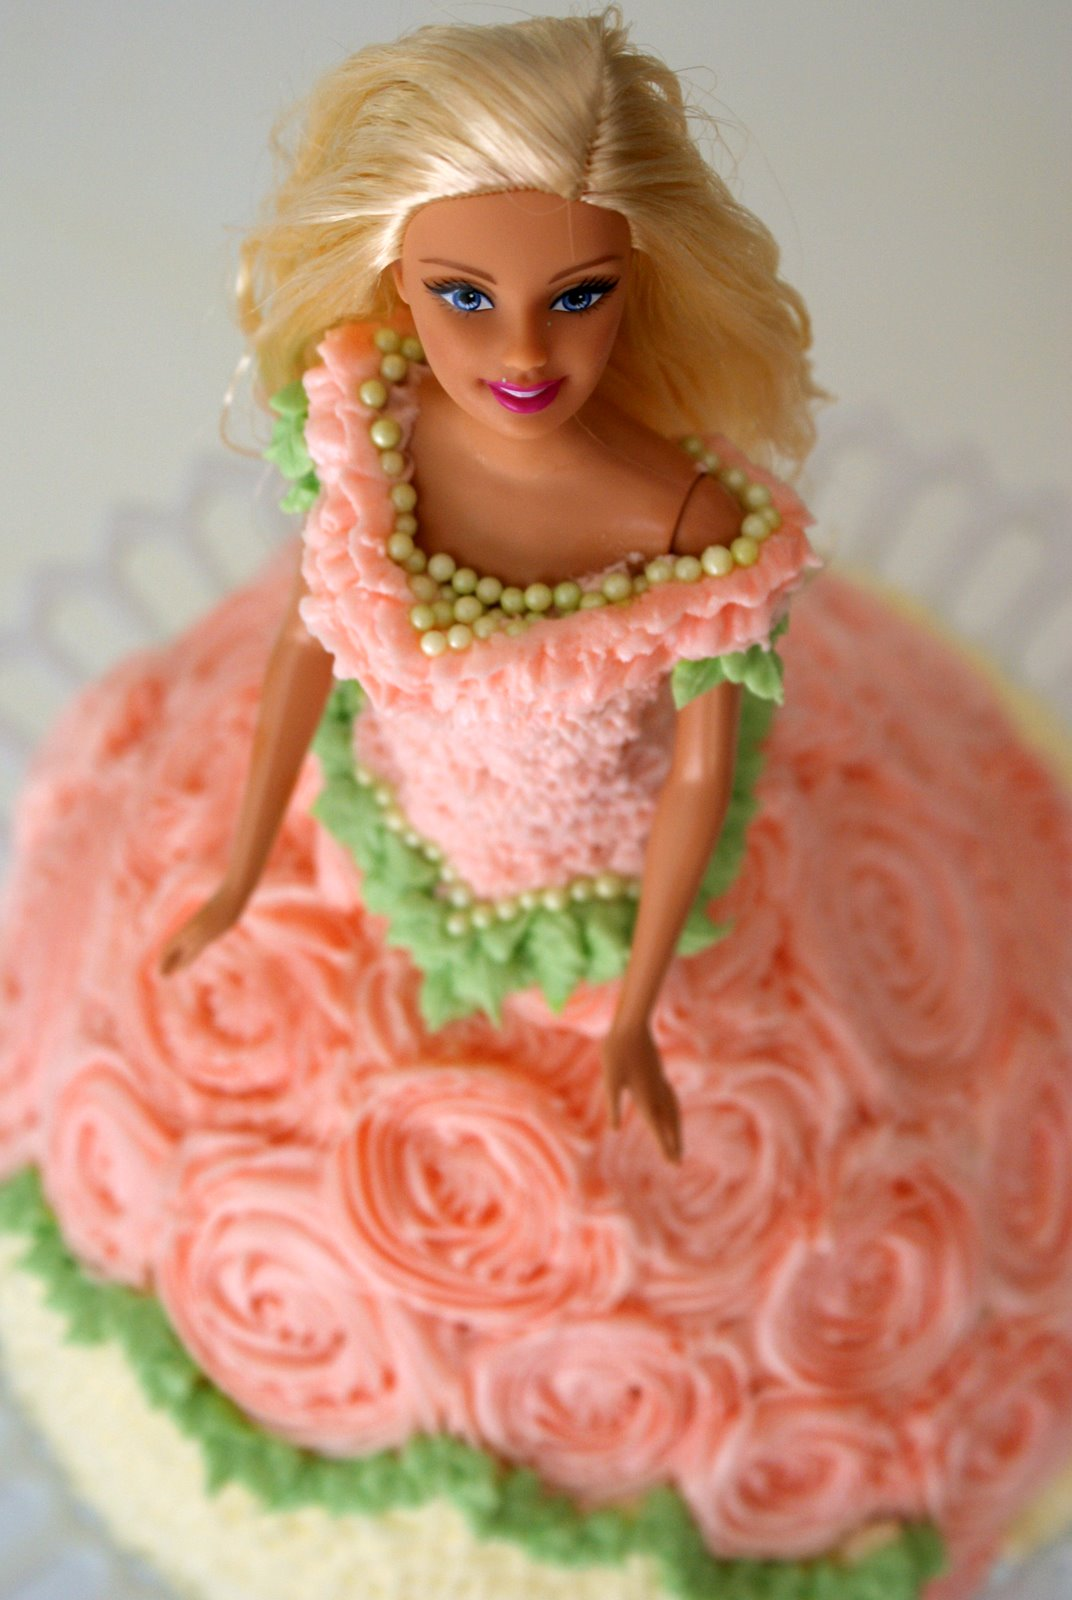 Images Of A Barbie Cake : A Little Loveliness: Barbie Doll Cake